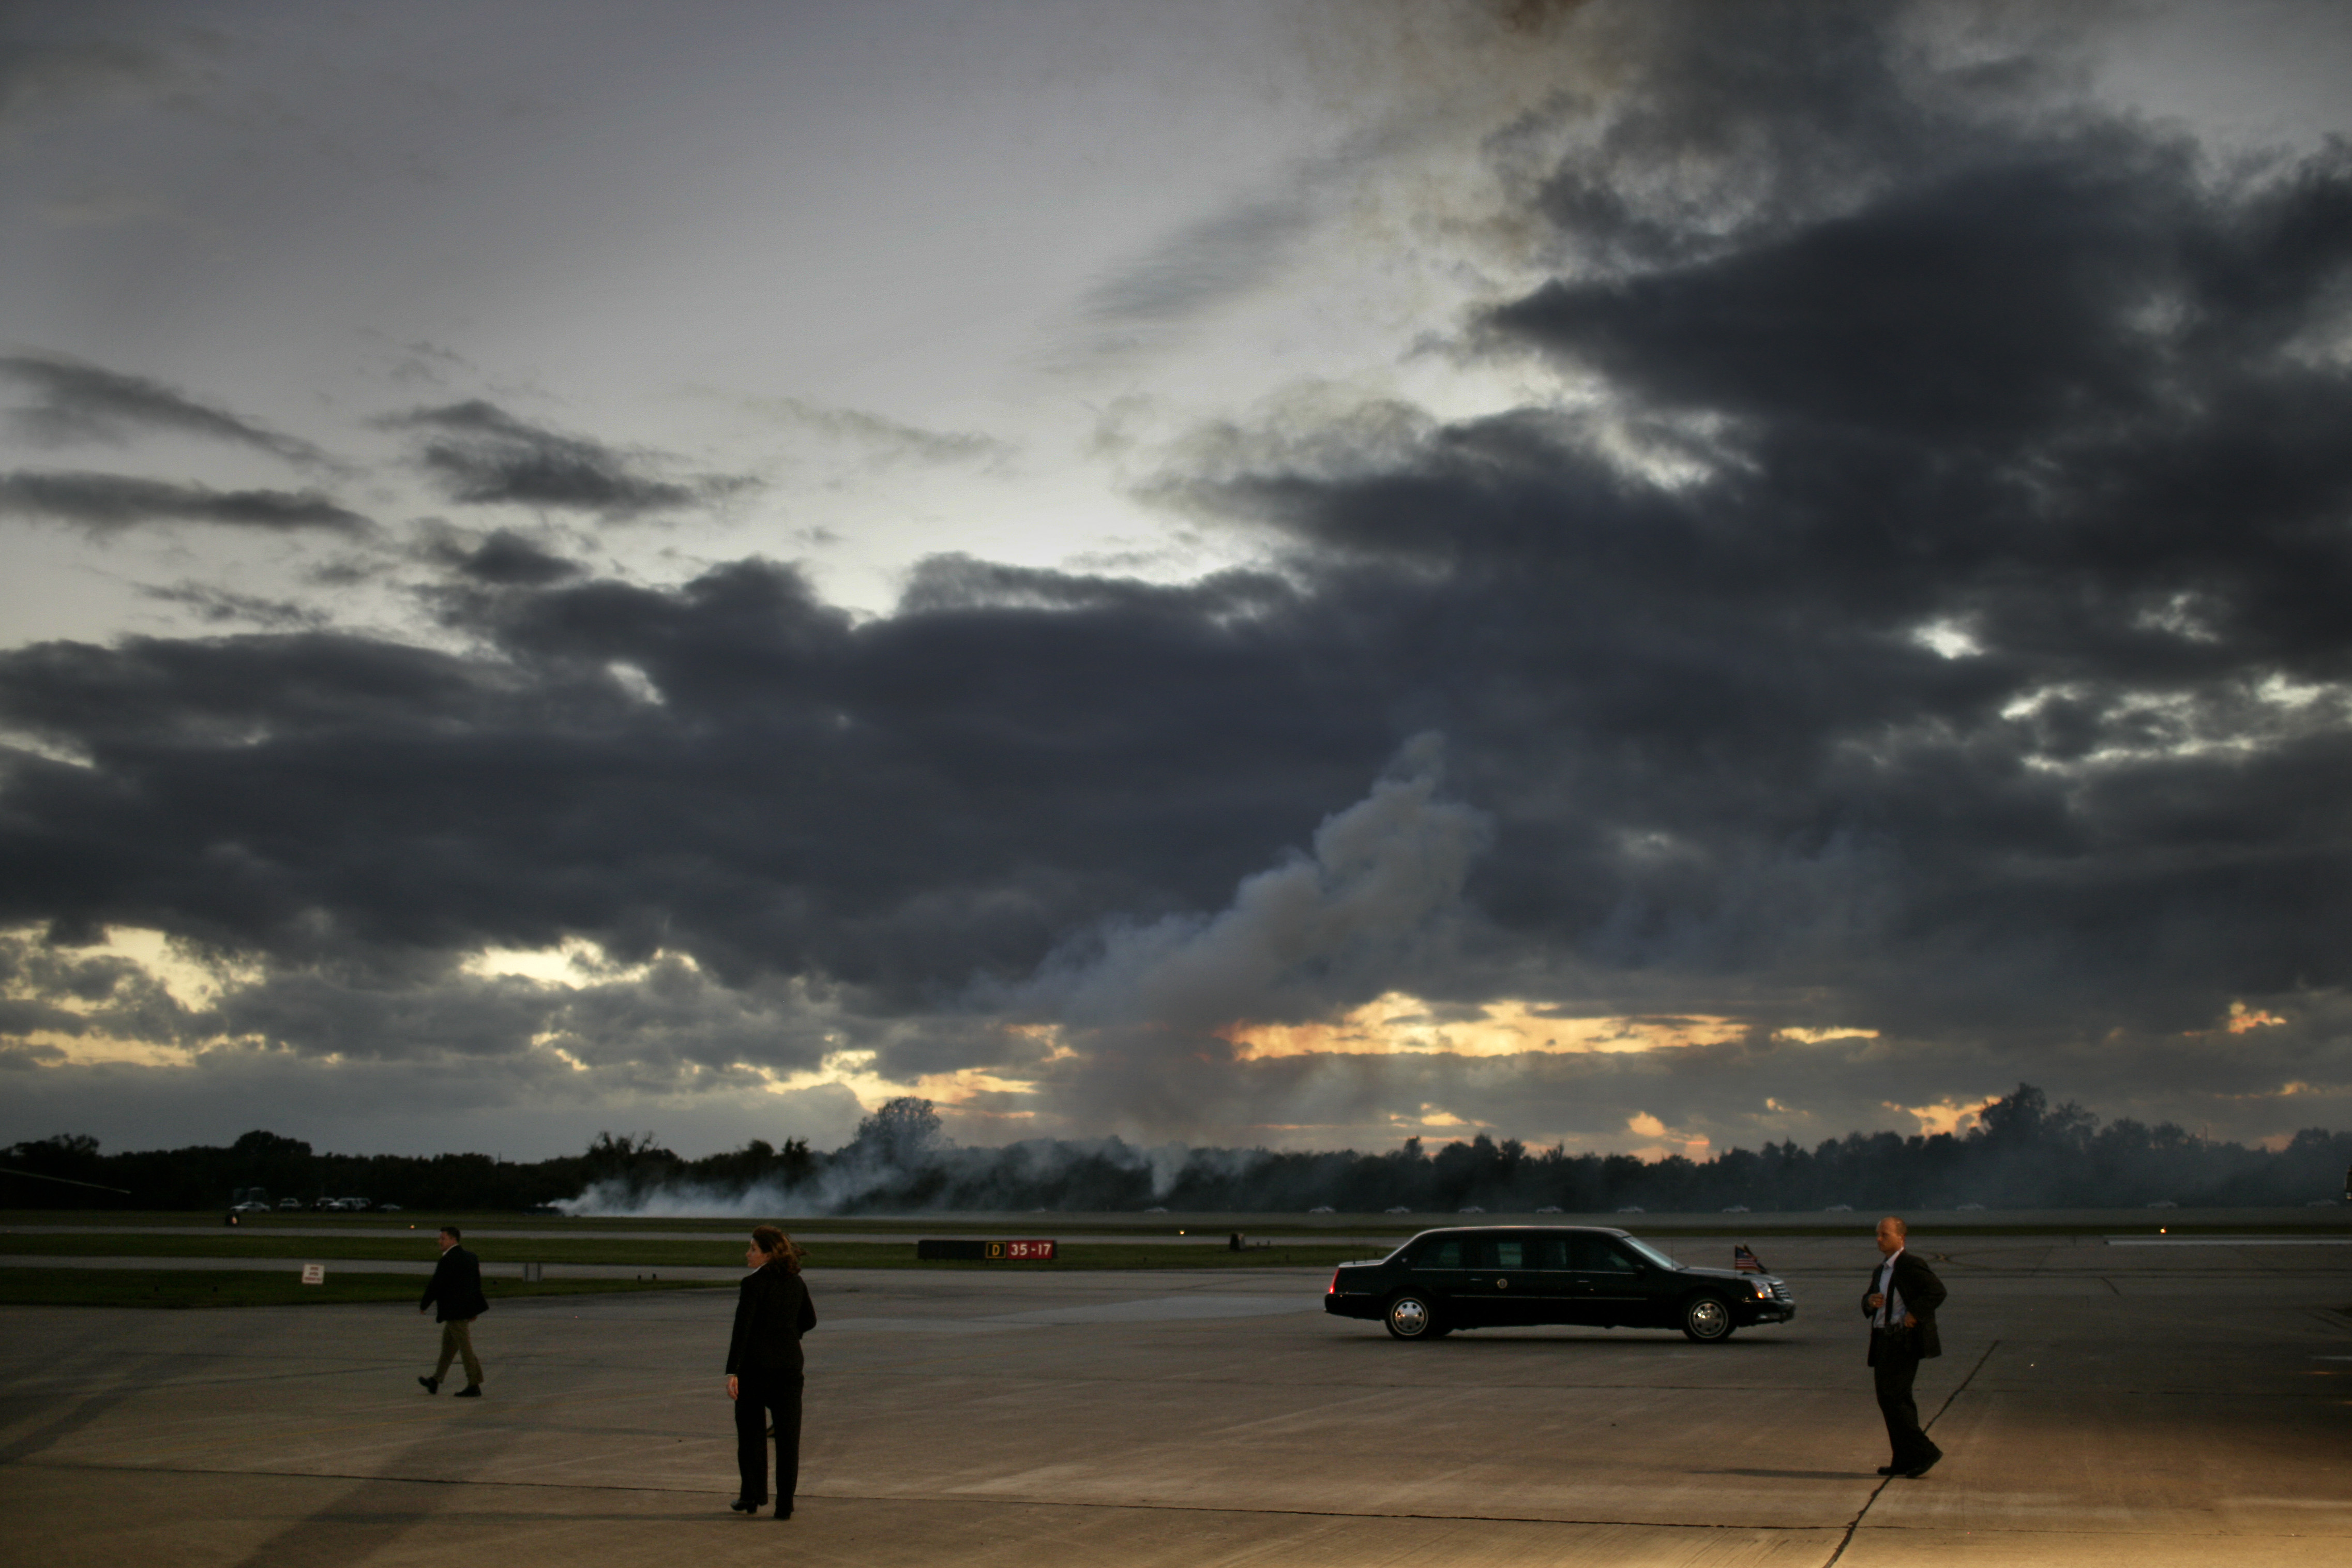 Secret Service agents stand near the Presidential Limousine at the conclusion of a campaign rally attended by President Bush in an airport hanger in Sugar Land, Texas on Oct. 30, 2006.